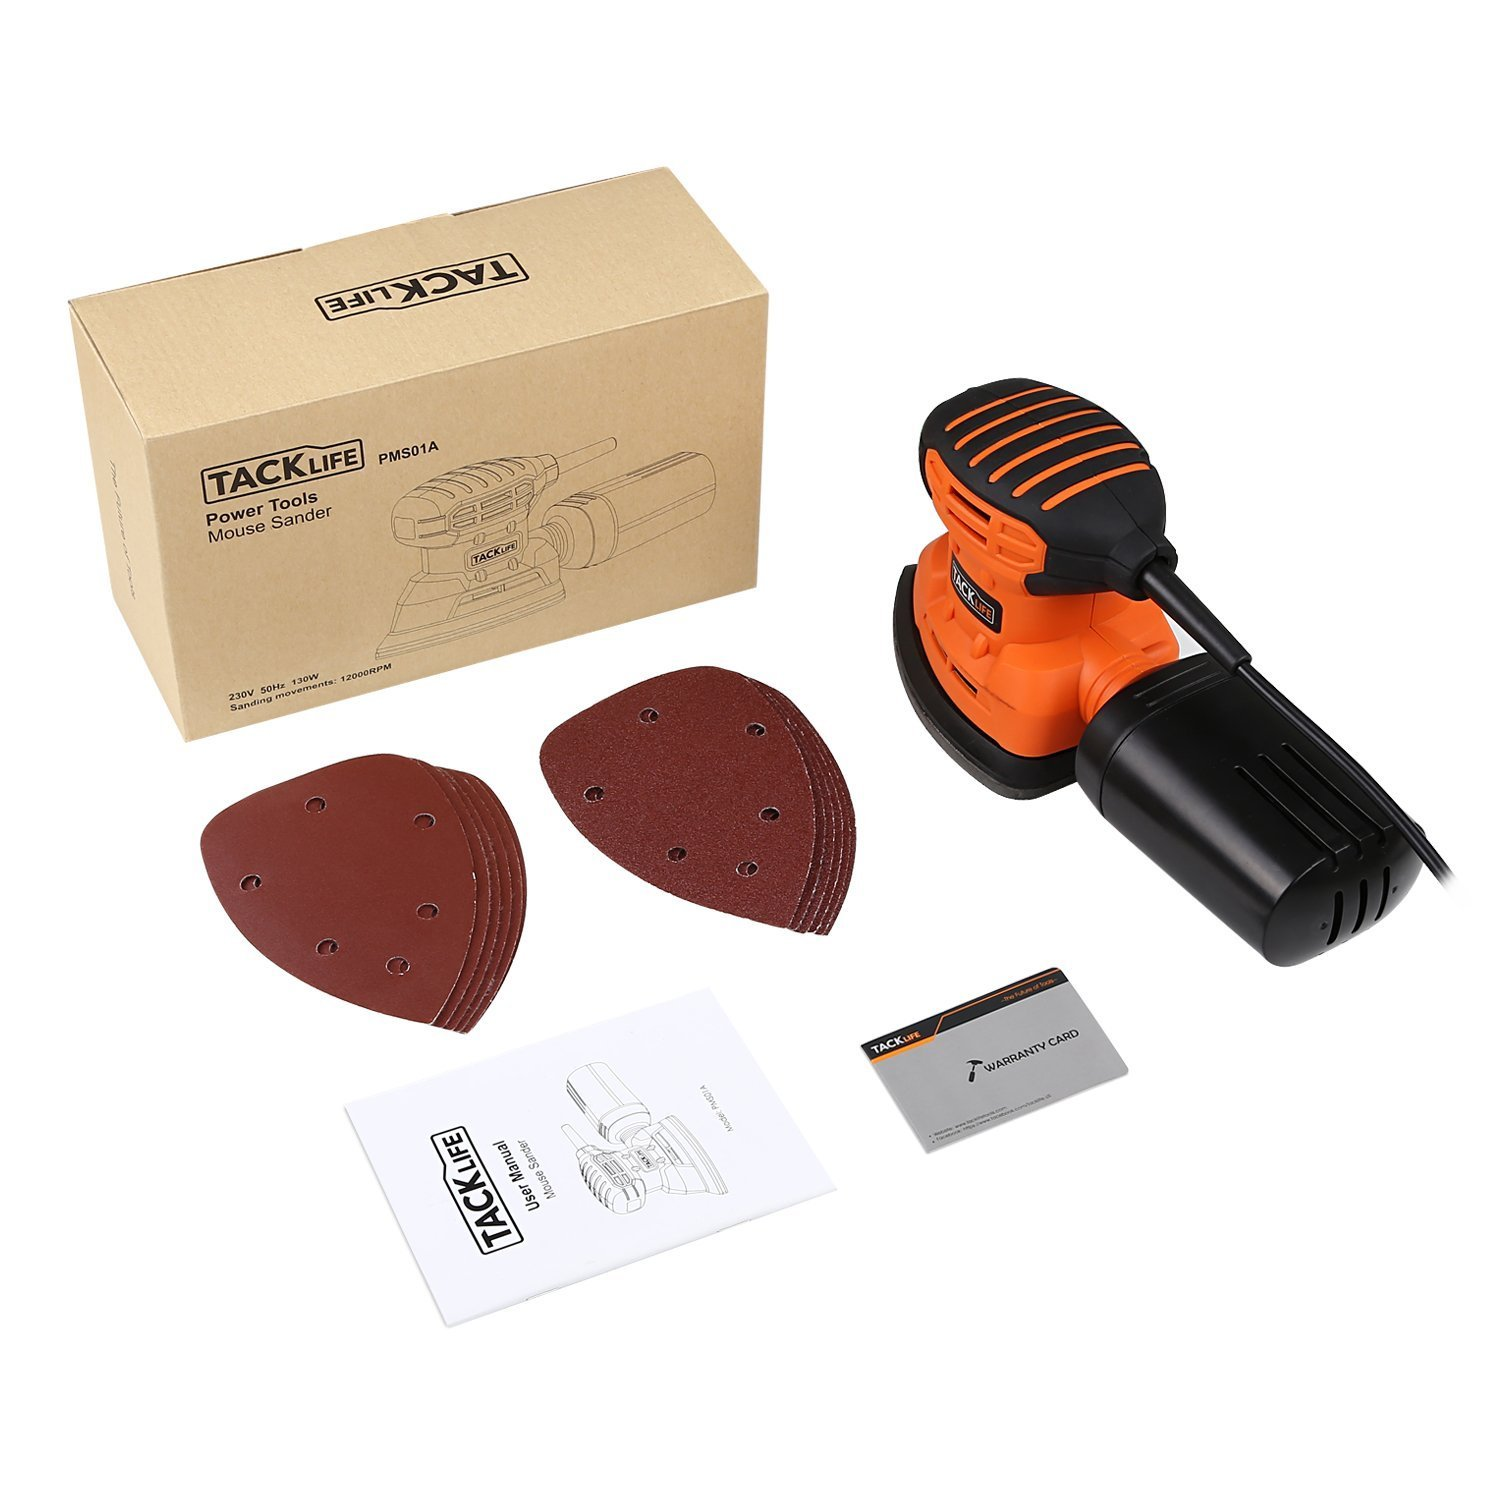 Mouse Detail Sander with 12Pcs Sanderpaper, 12000 OPM Sander with Dust Collection System For Tight Spaces Sanding in Home Decoration, DIY by TACKLIFE (Image #8)